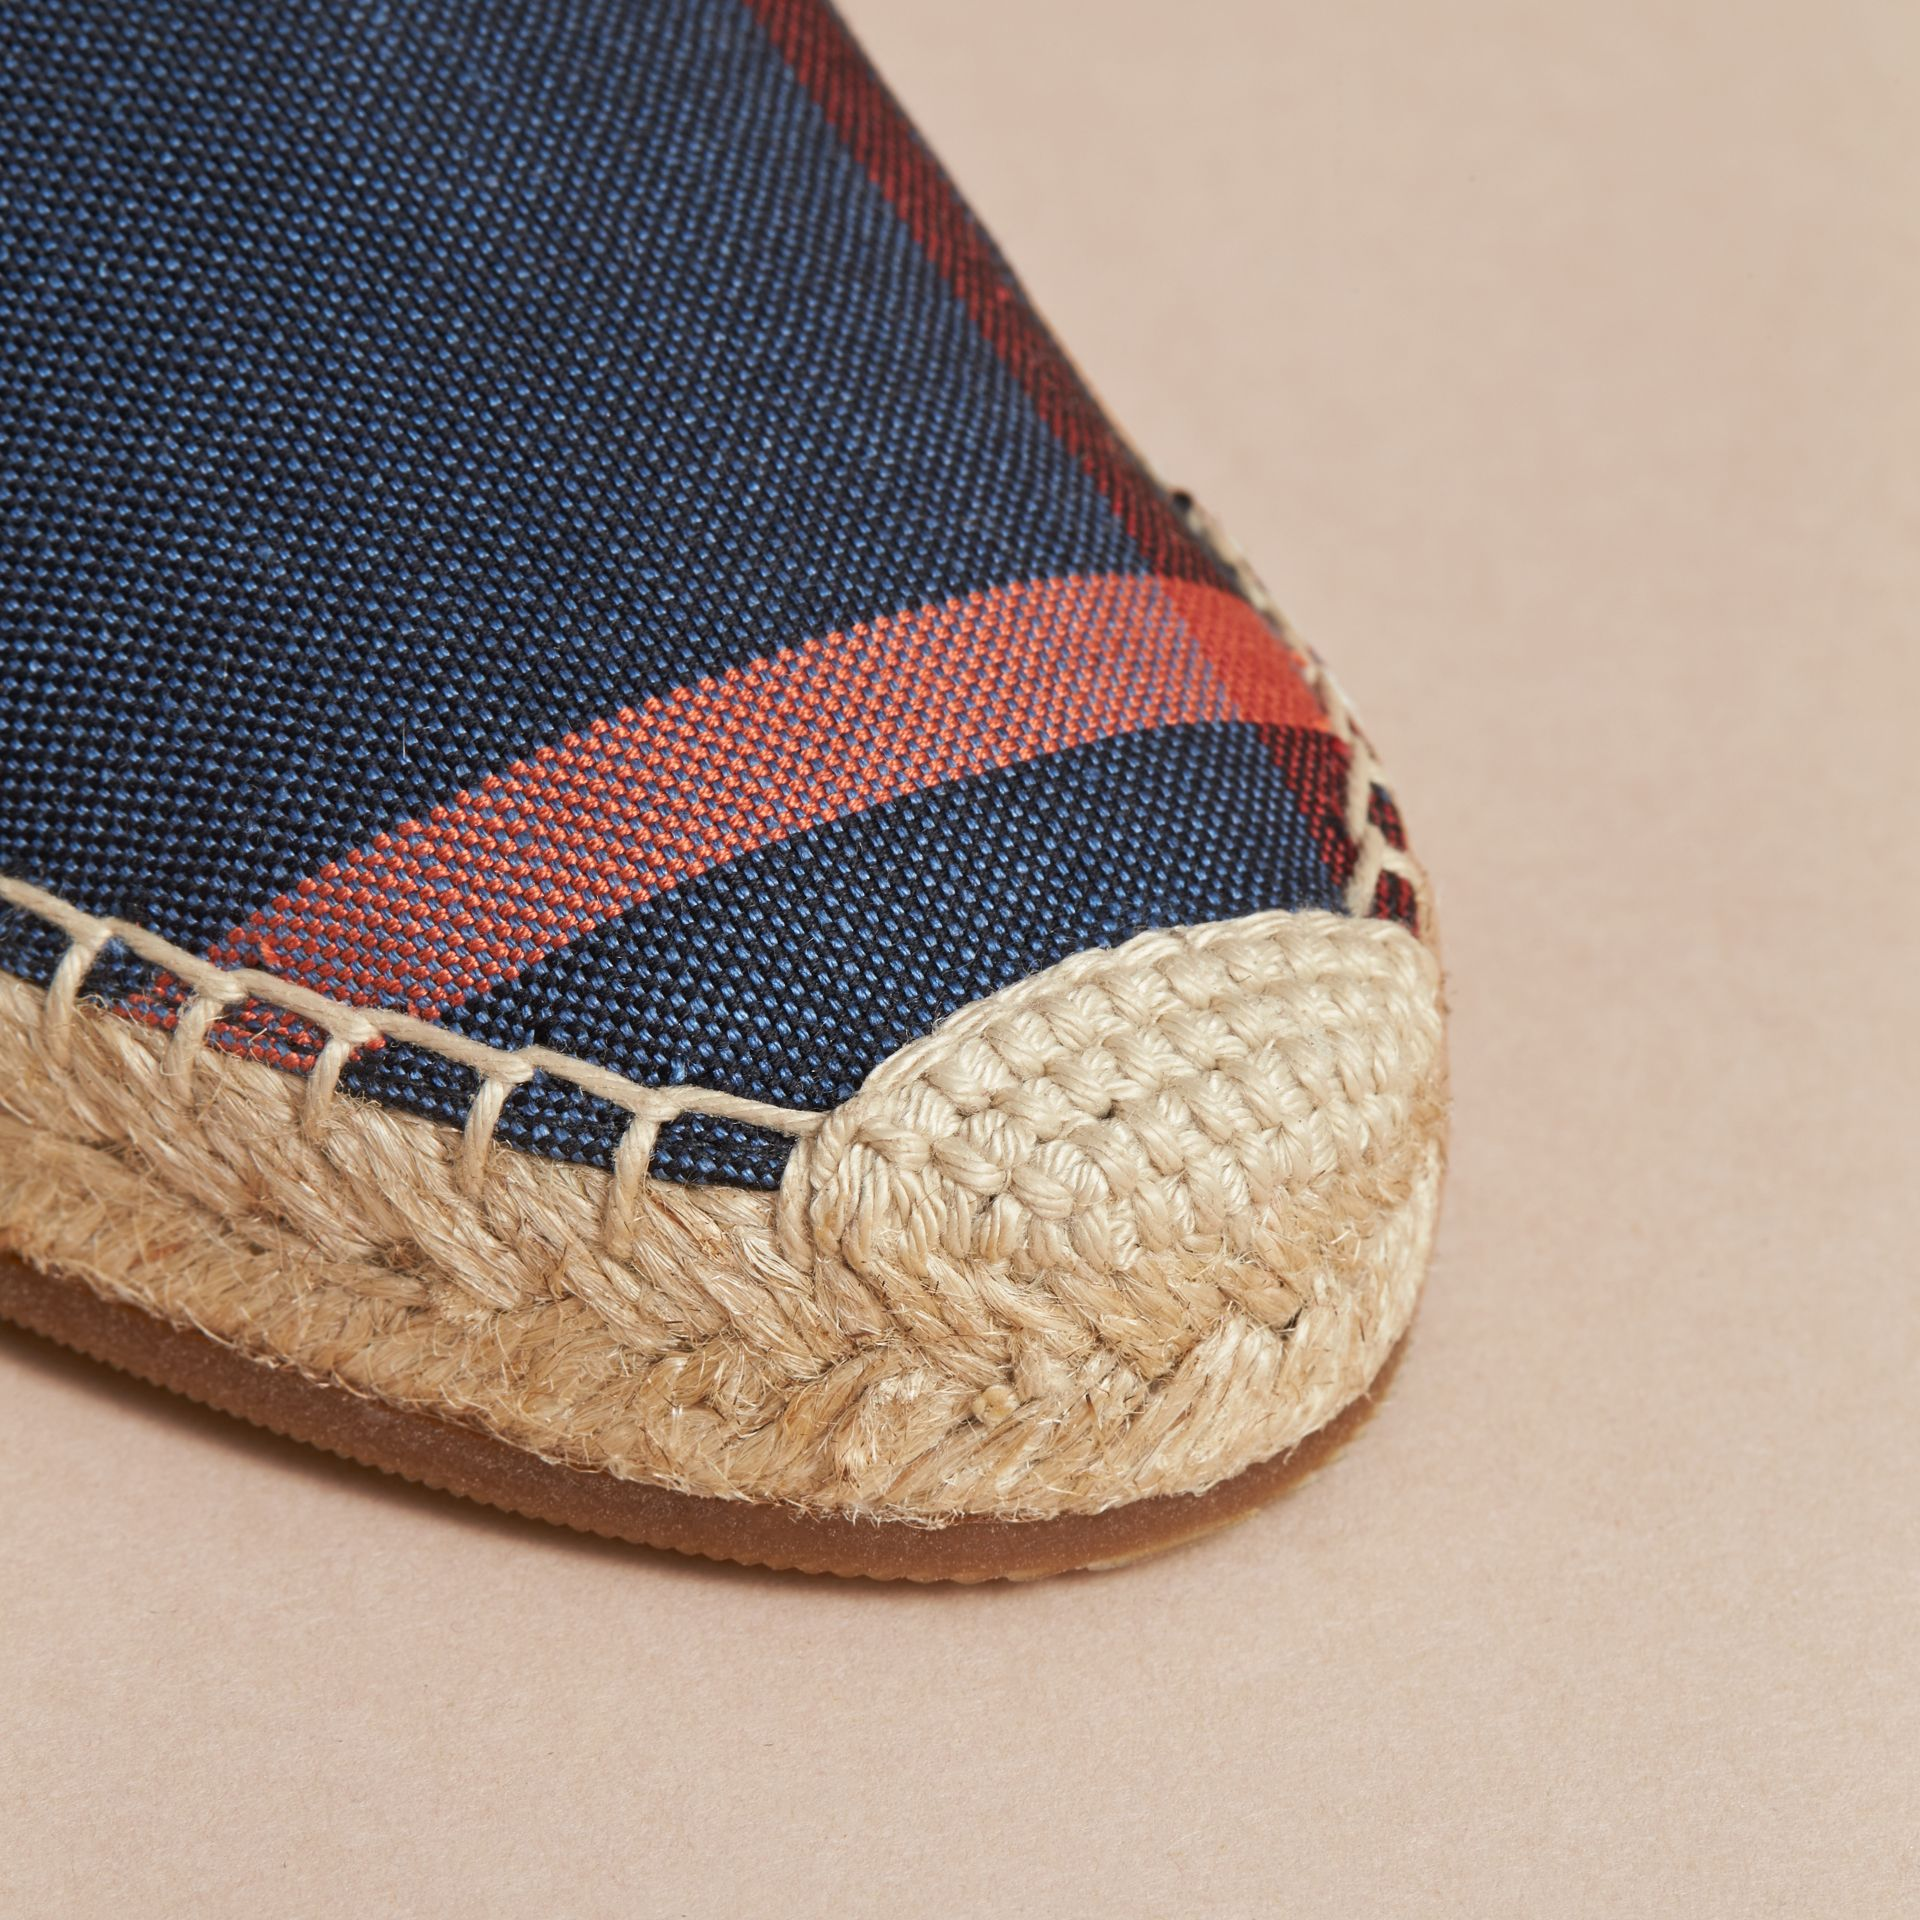 Leather and Check Linen Cotton Espadrille Sandals in Navy - Women | Burberry United Kingdom - gallery image 4